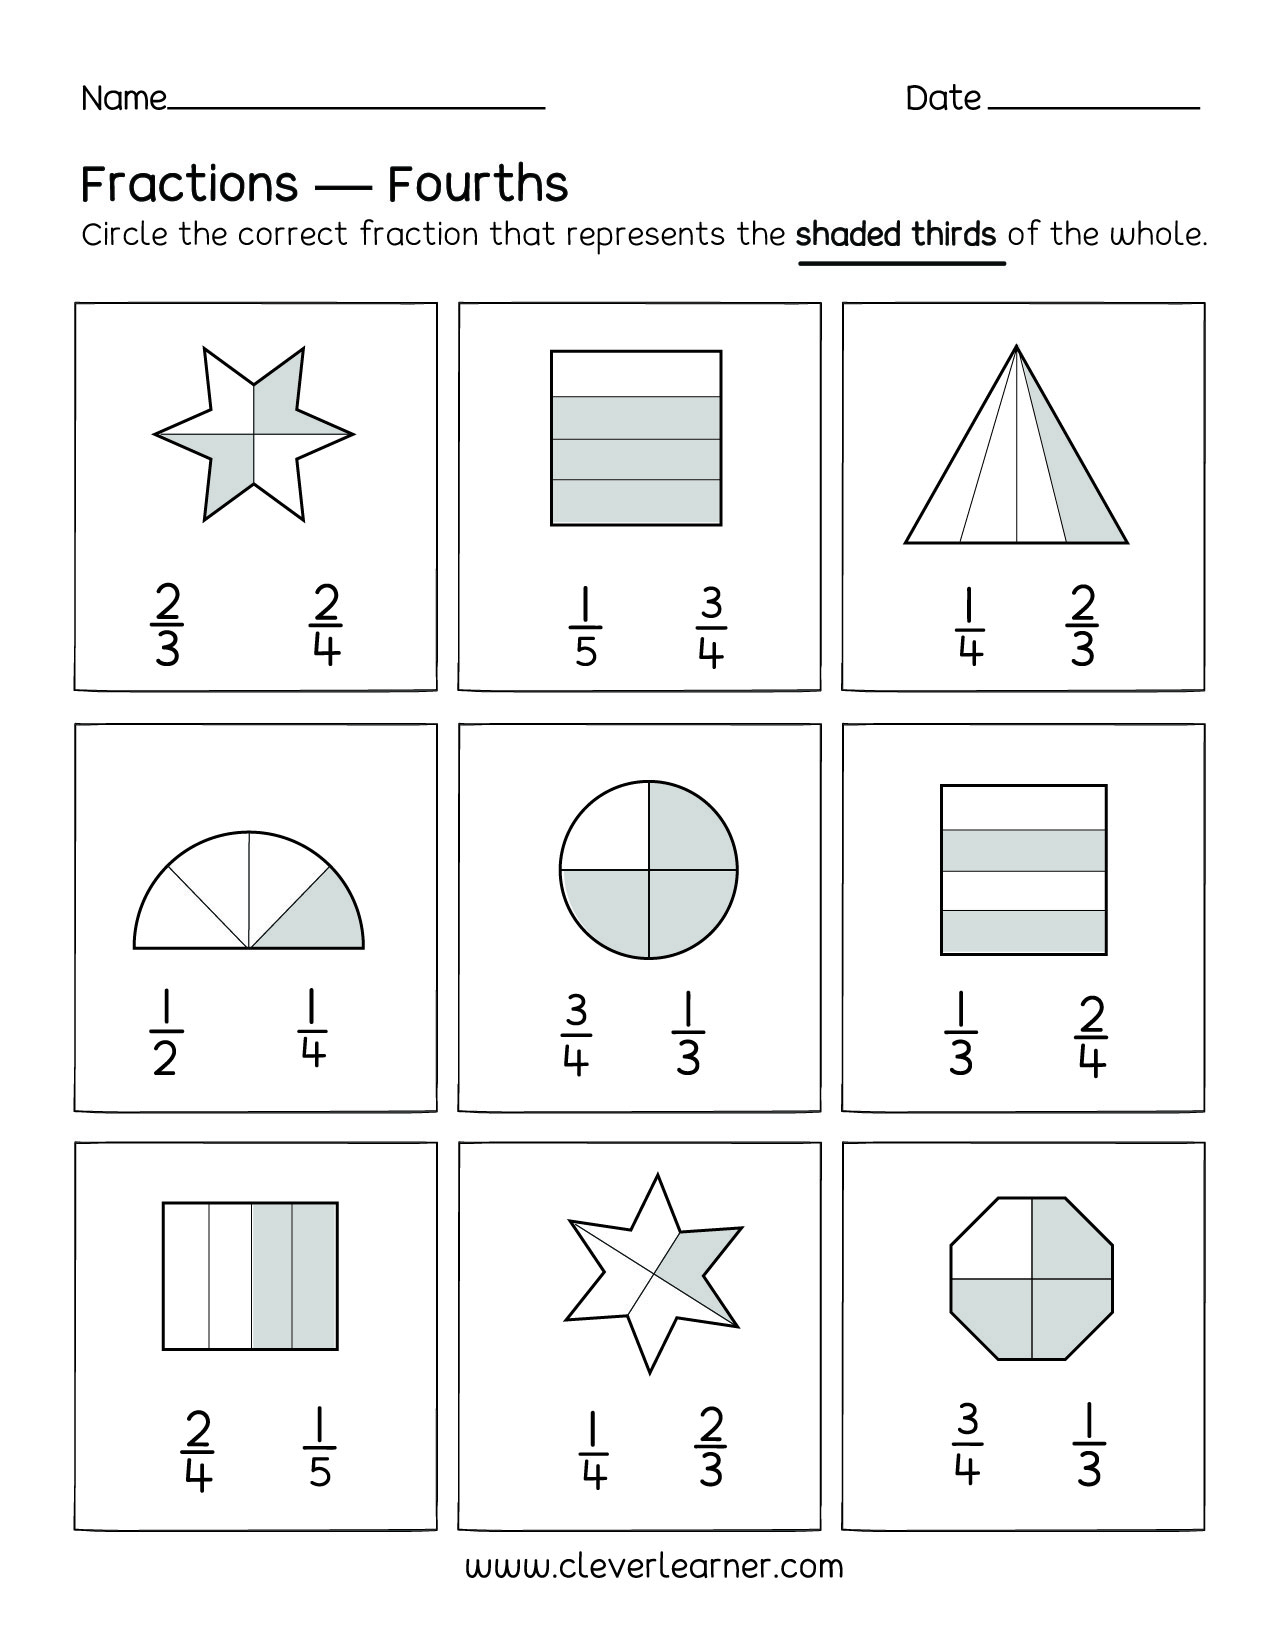 Fun Activity On Fractions Fourths Worksheets For Children